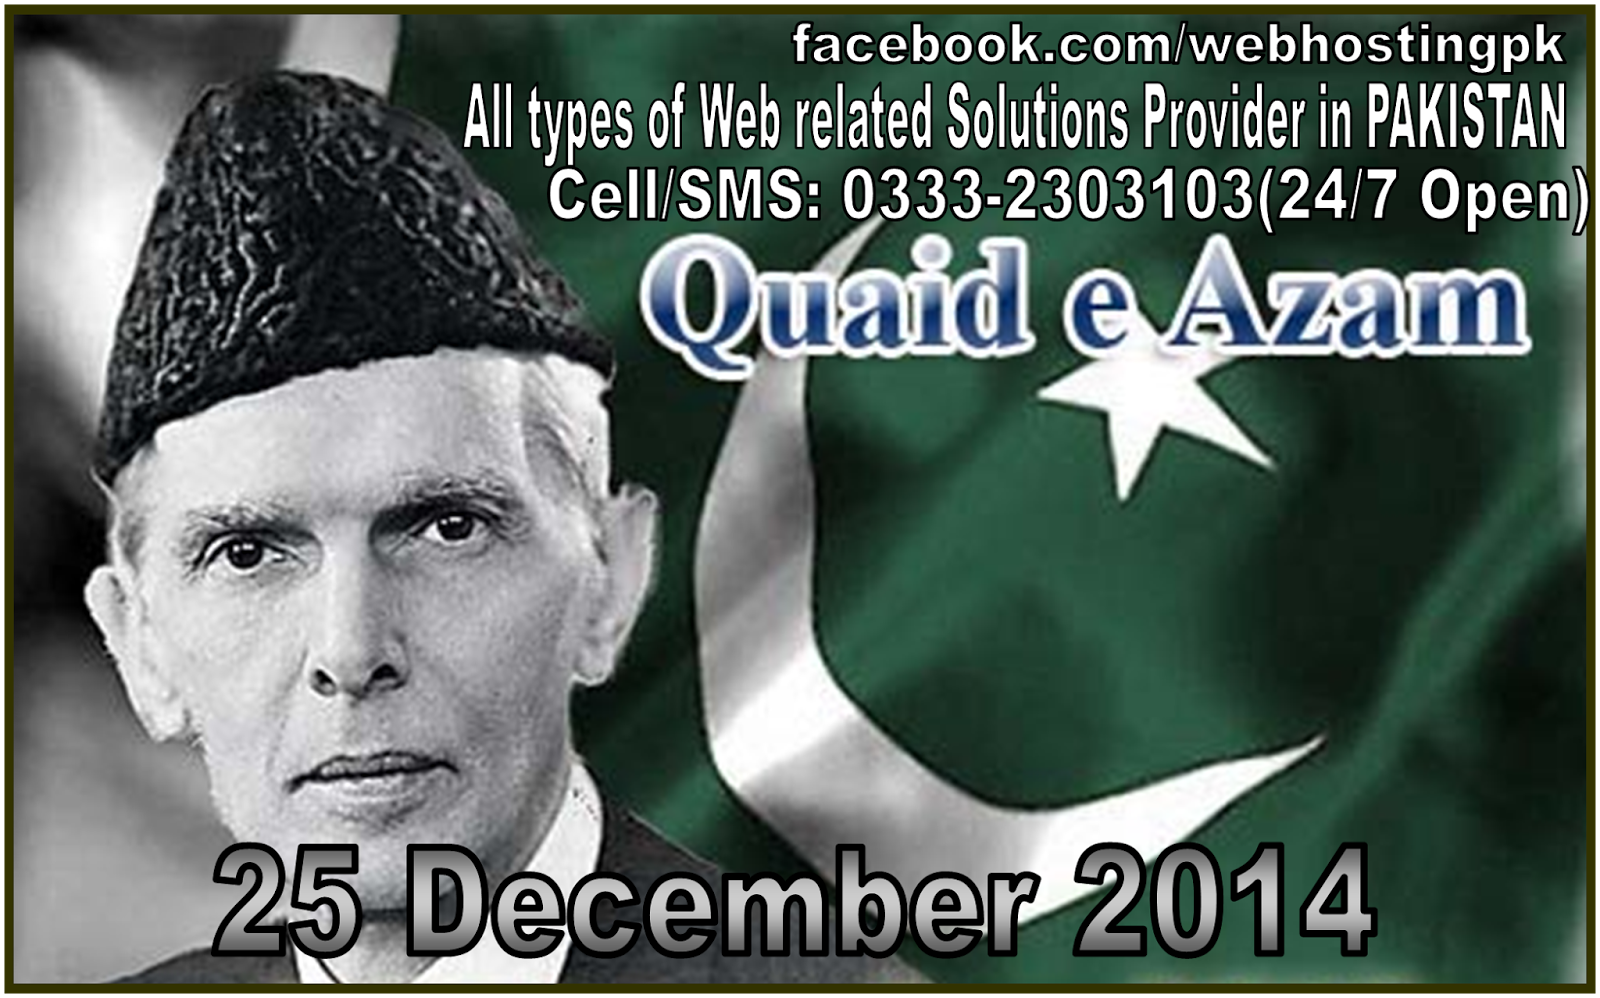 Free Wallpaper for Quaid-e-Azam 138-Birthday Anniversary 2014Get Free Wallpaper for your PC, Desktop, Laptop, Tablet PC. Mbile Device, Aneroid and iPhone  for Quaid-e-Azam 138-Birthday Anniversary 2014